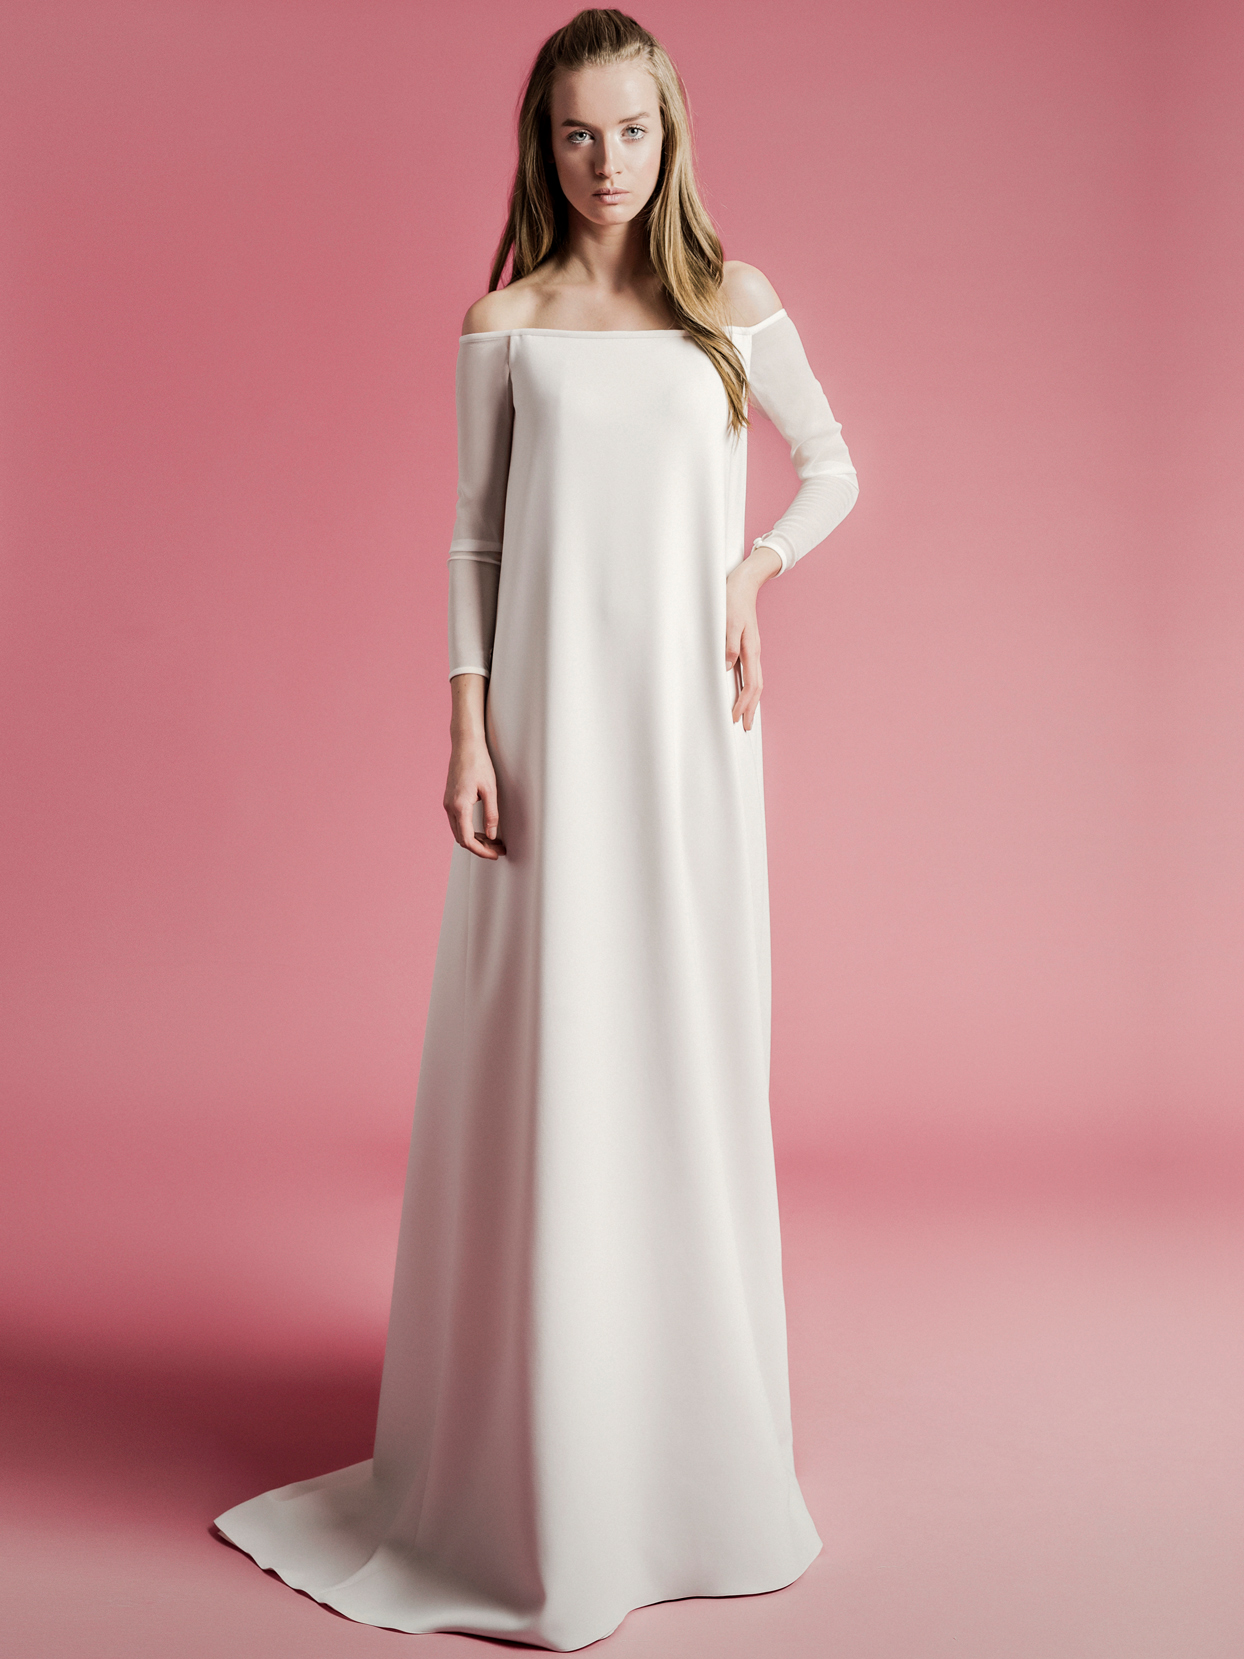 Sophie Et Voilà off-the-shoulder long sleeve sheath wedding dress spring 2021